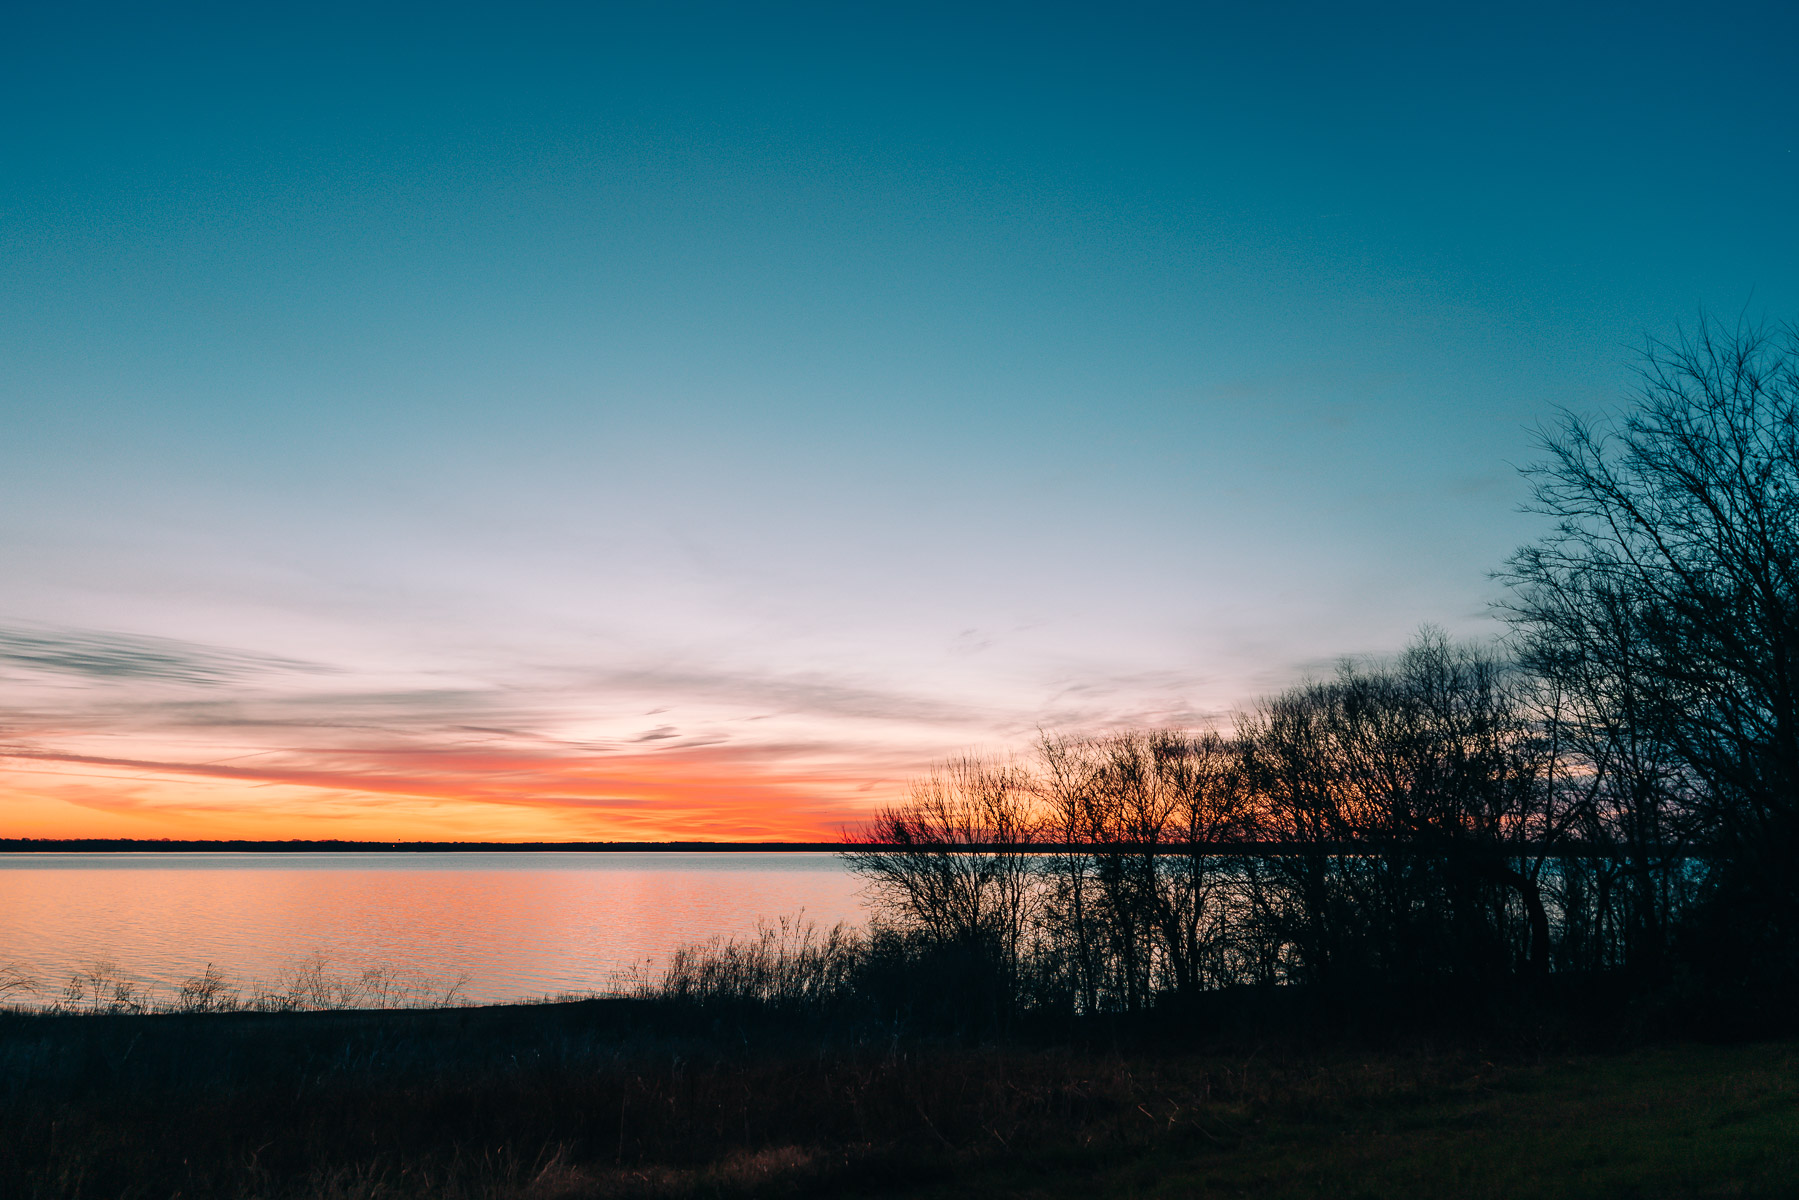 Dawn at North Texas' Lake Lavon.